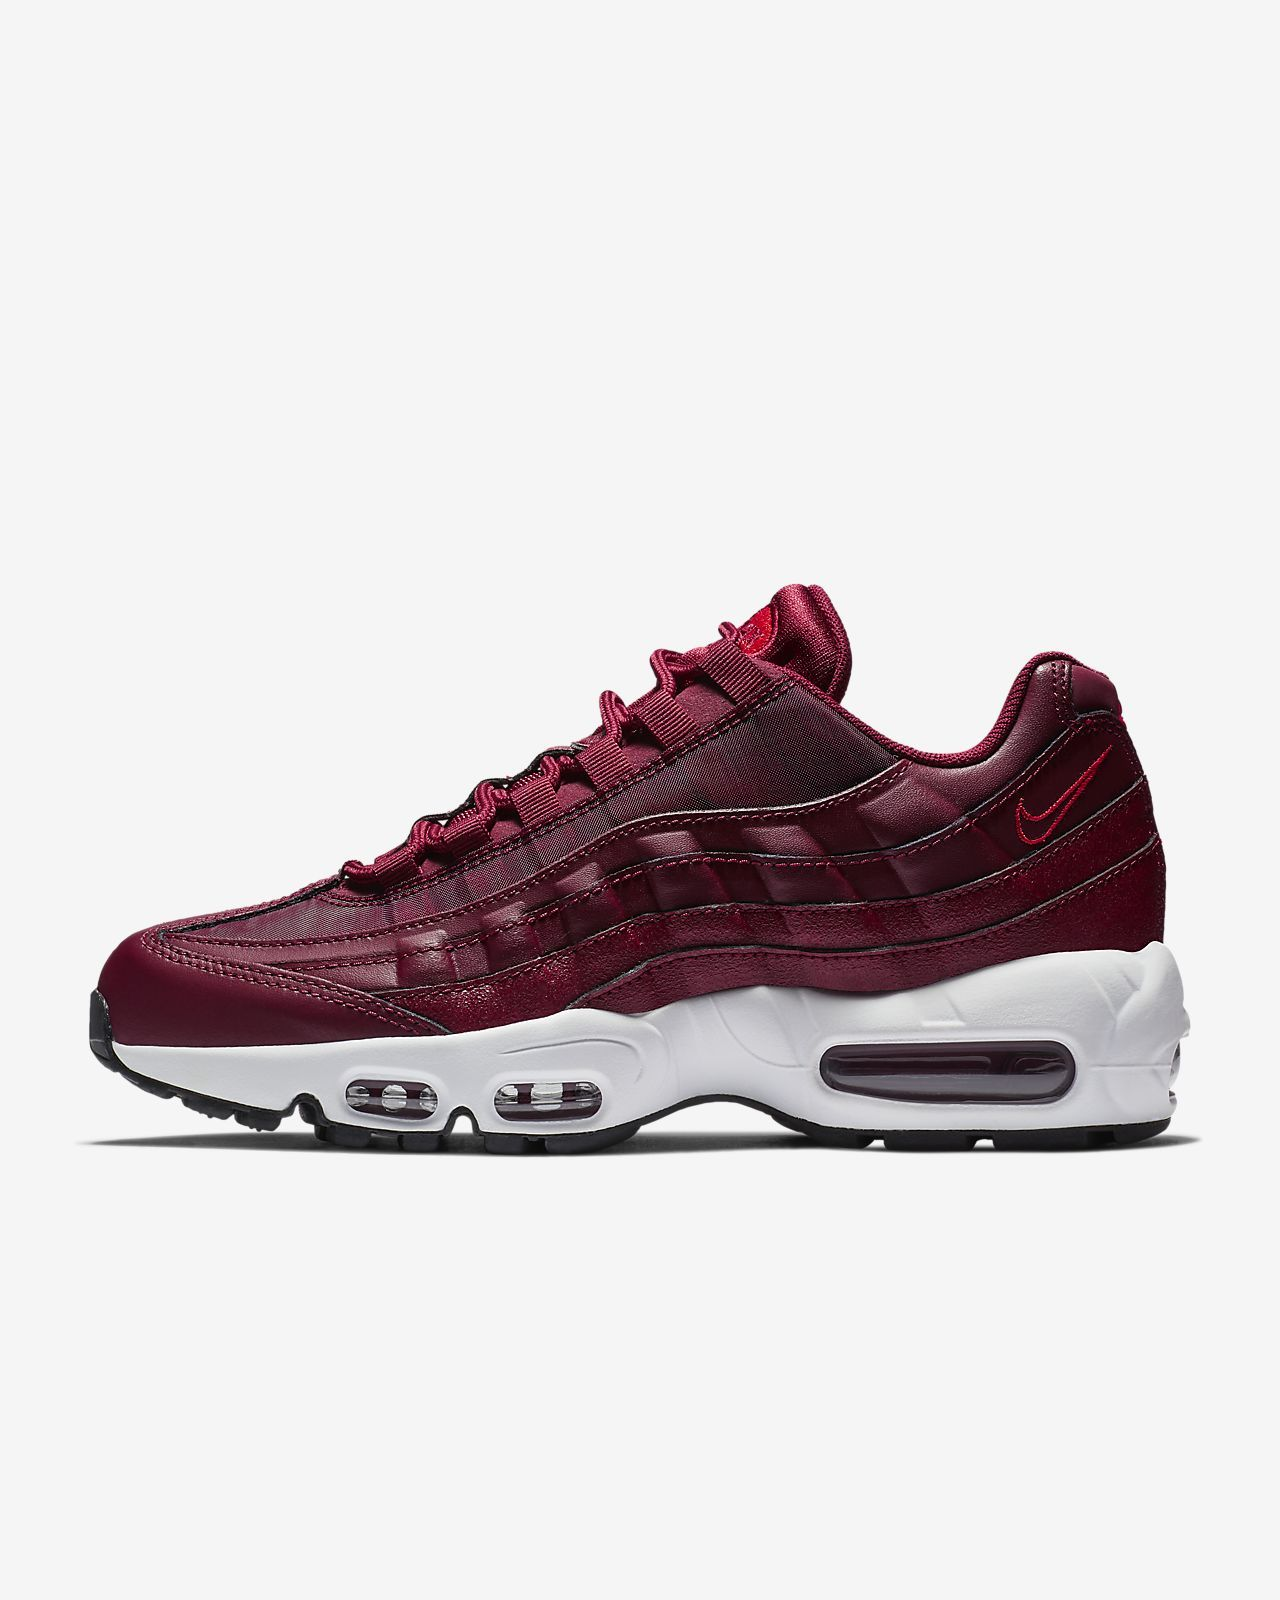 low priced 9676e 804a2 Nike Air Max 95 OG Women s Shoe